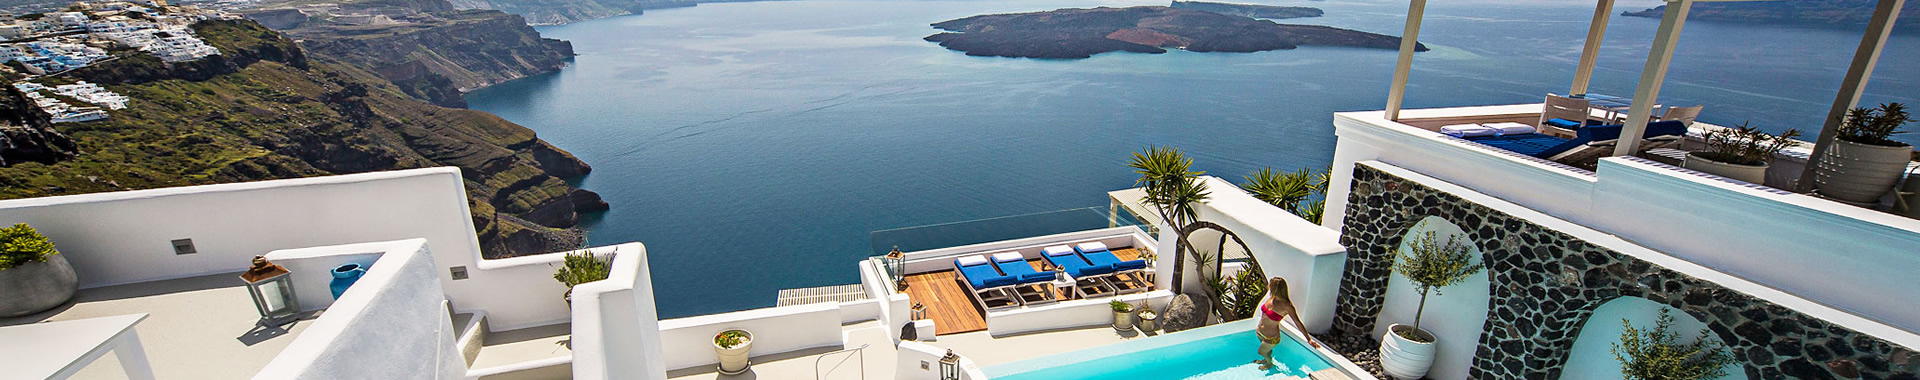 Kamari, Perissa or Karterados Hotels in Santorini island, Greece